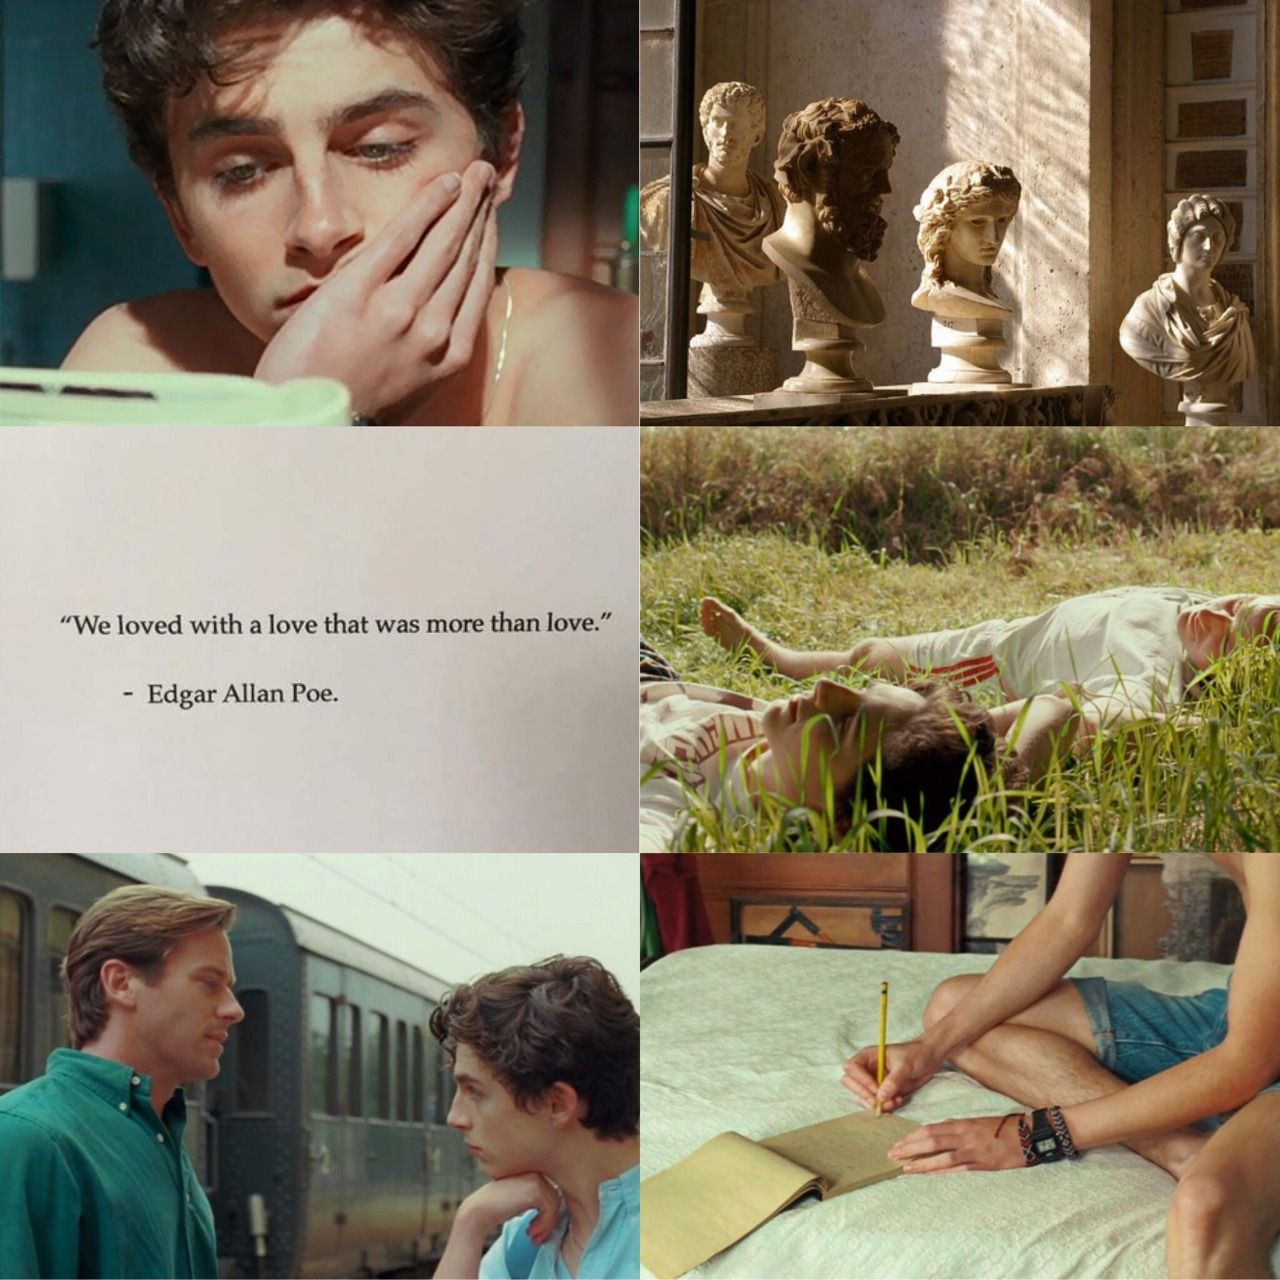 Call Me By Your Name Tumblr ˏˋ Cmbyn ˎˊ Call Me Your Name